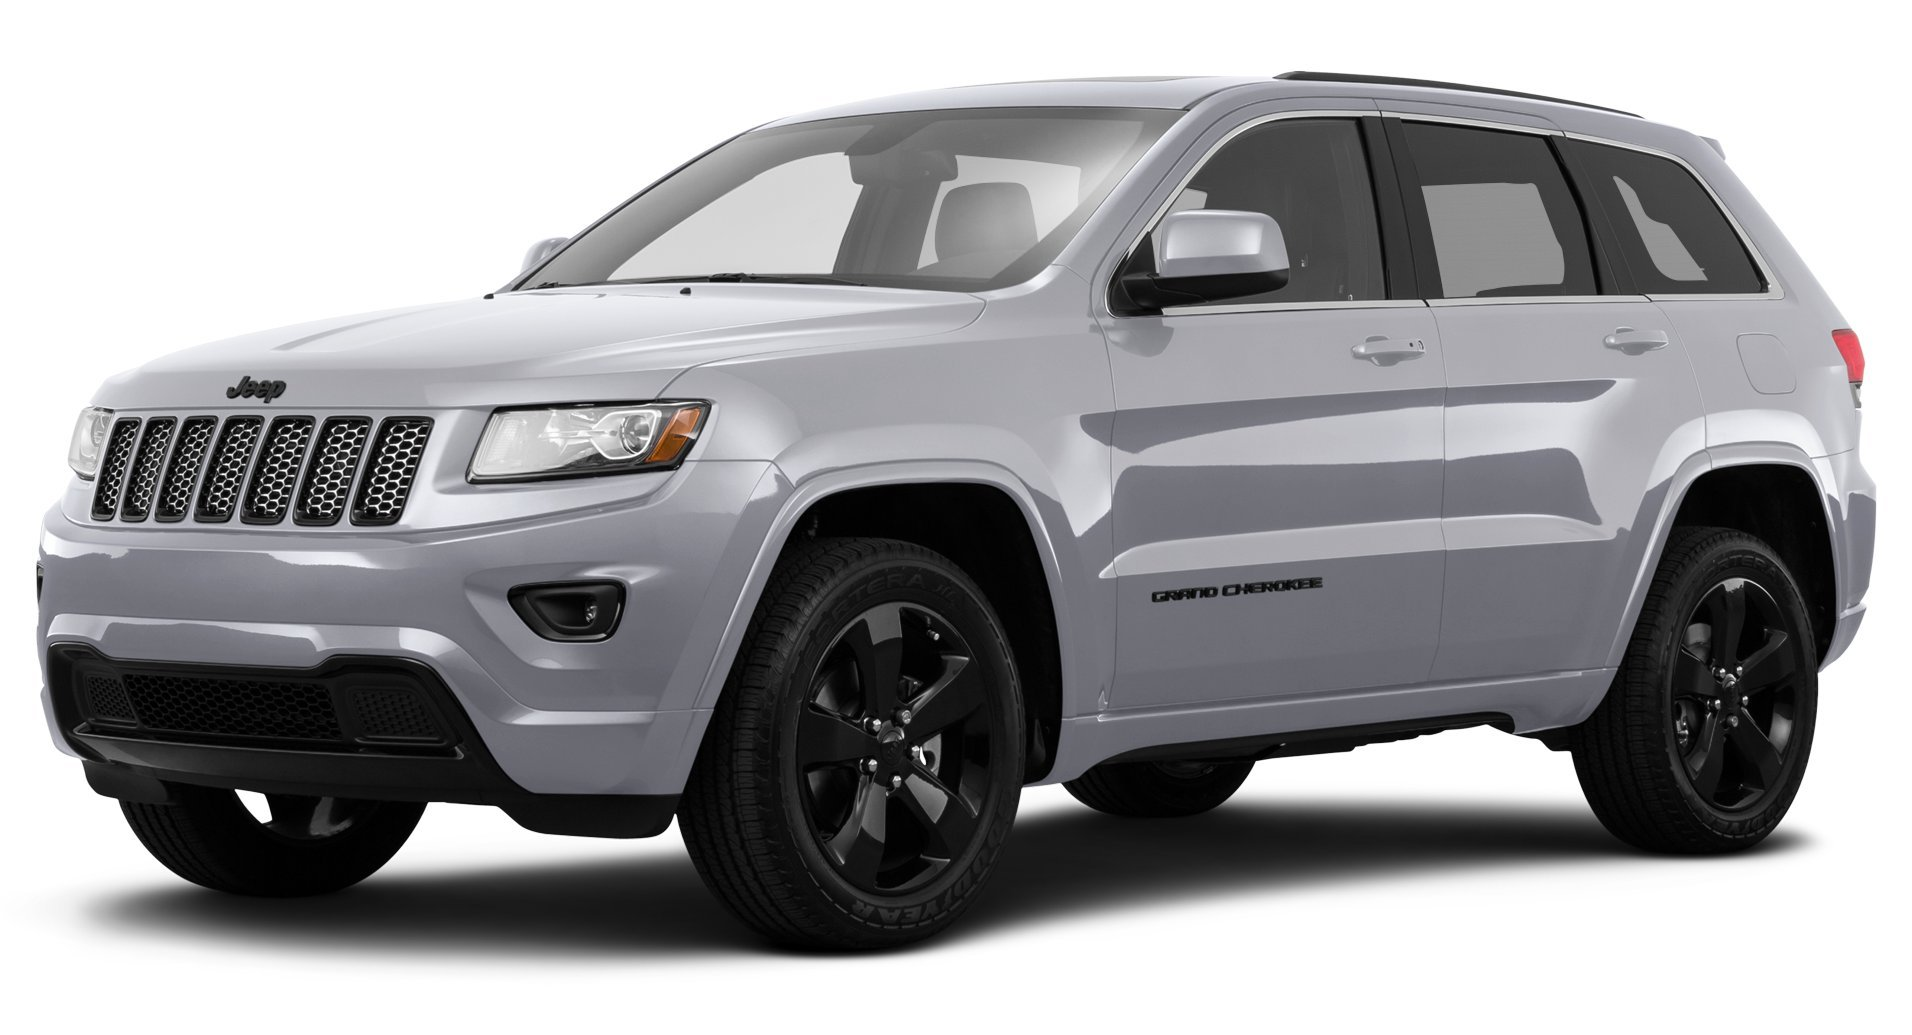 2015 Jeep Grand Cherokee Bolt Pattern Awesome Decorating Ideas